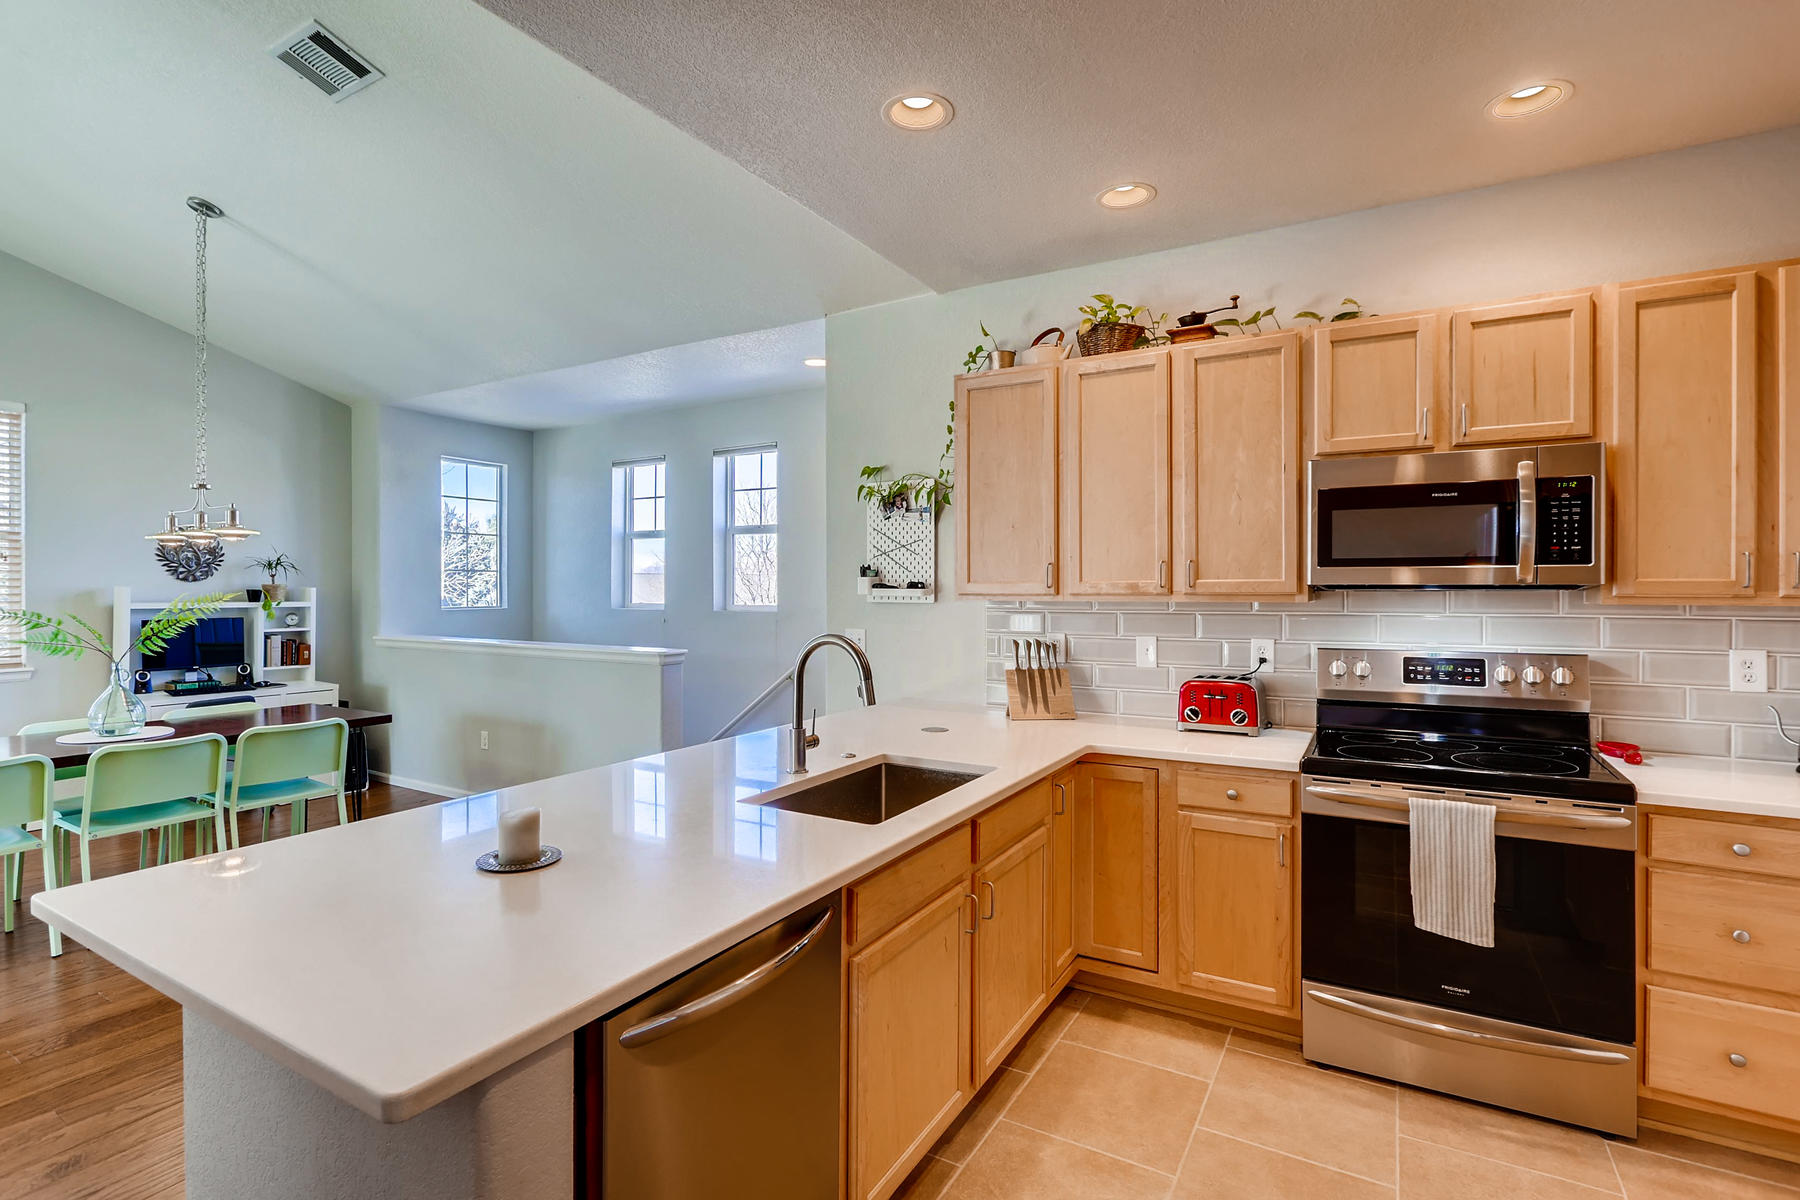 2142 S Fulton Cir 204 Denver-007-11-Kitchen-MLS_Size.jpg